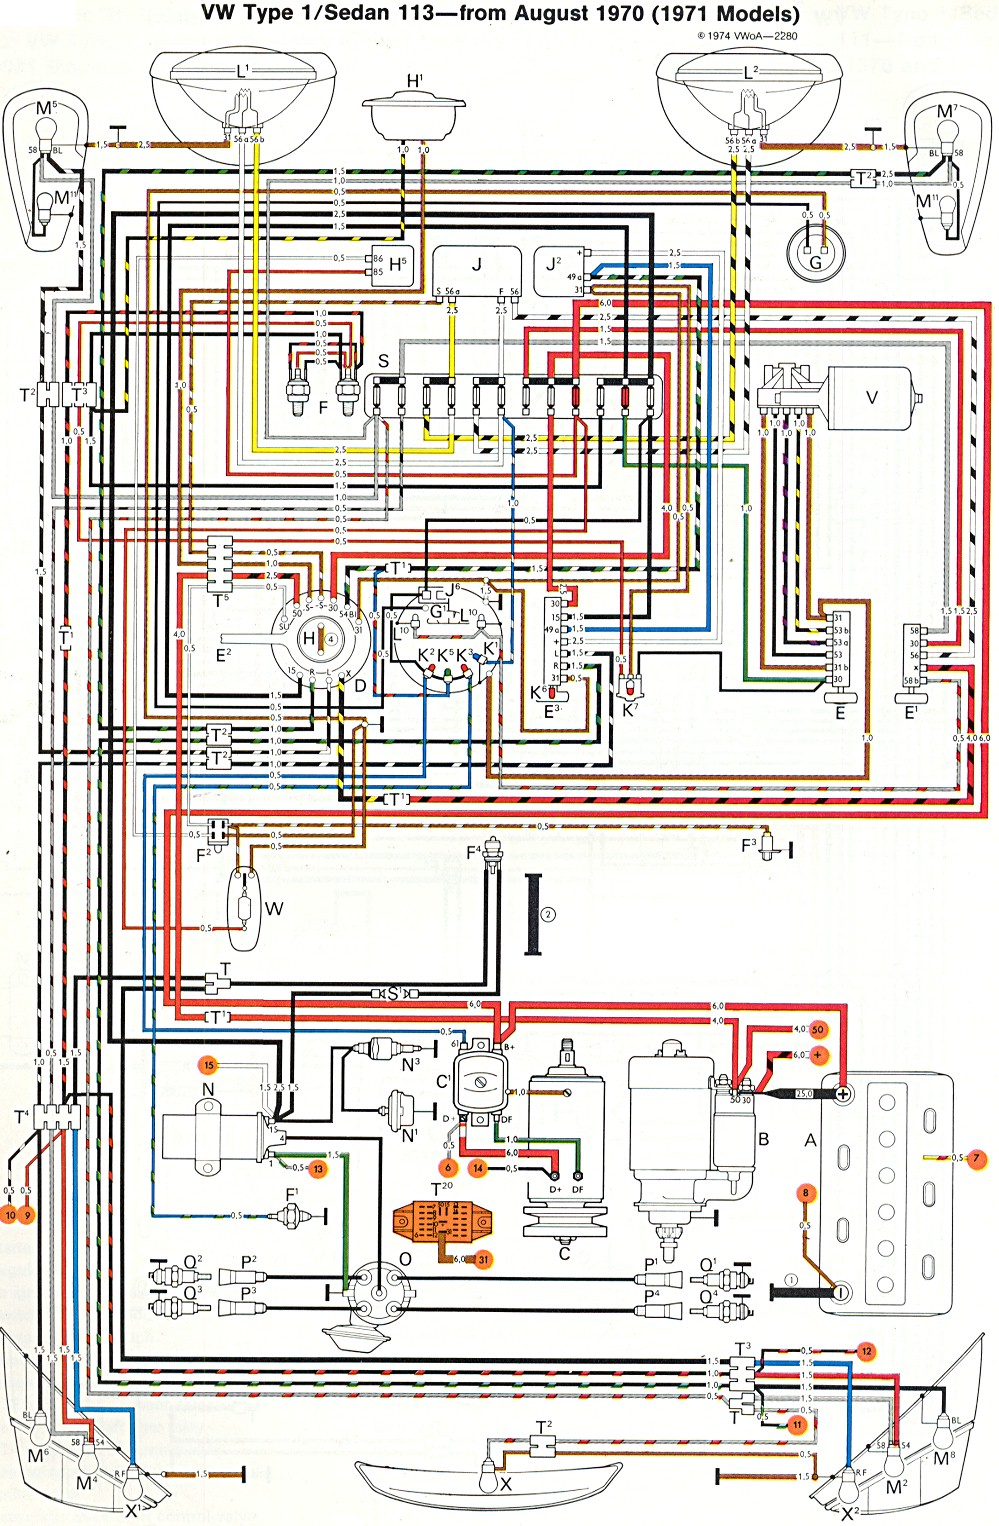 bug_super_71 1971 super beetle wiring diagram thegoldenbug com vw beetle diagrams at virtualis.co